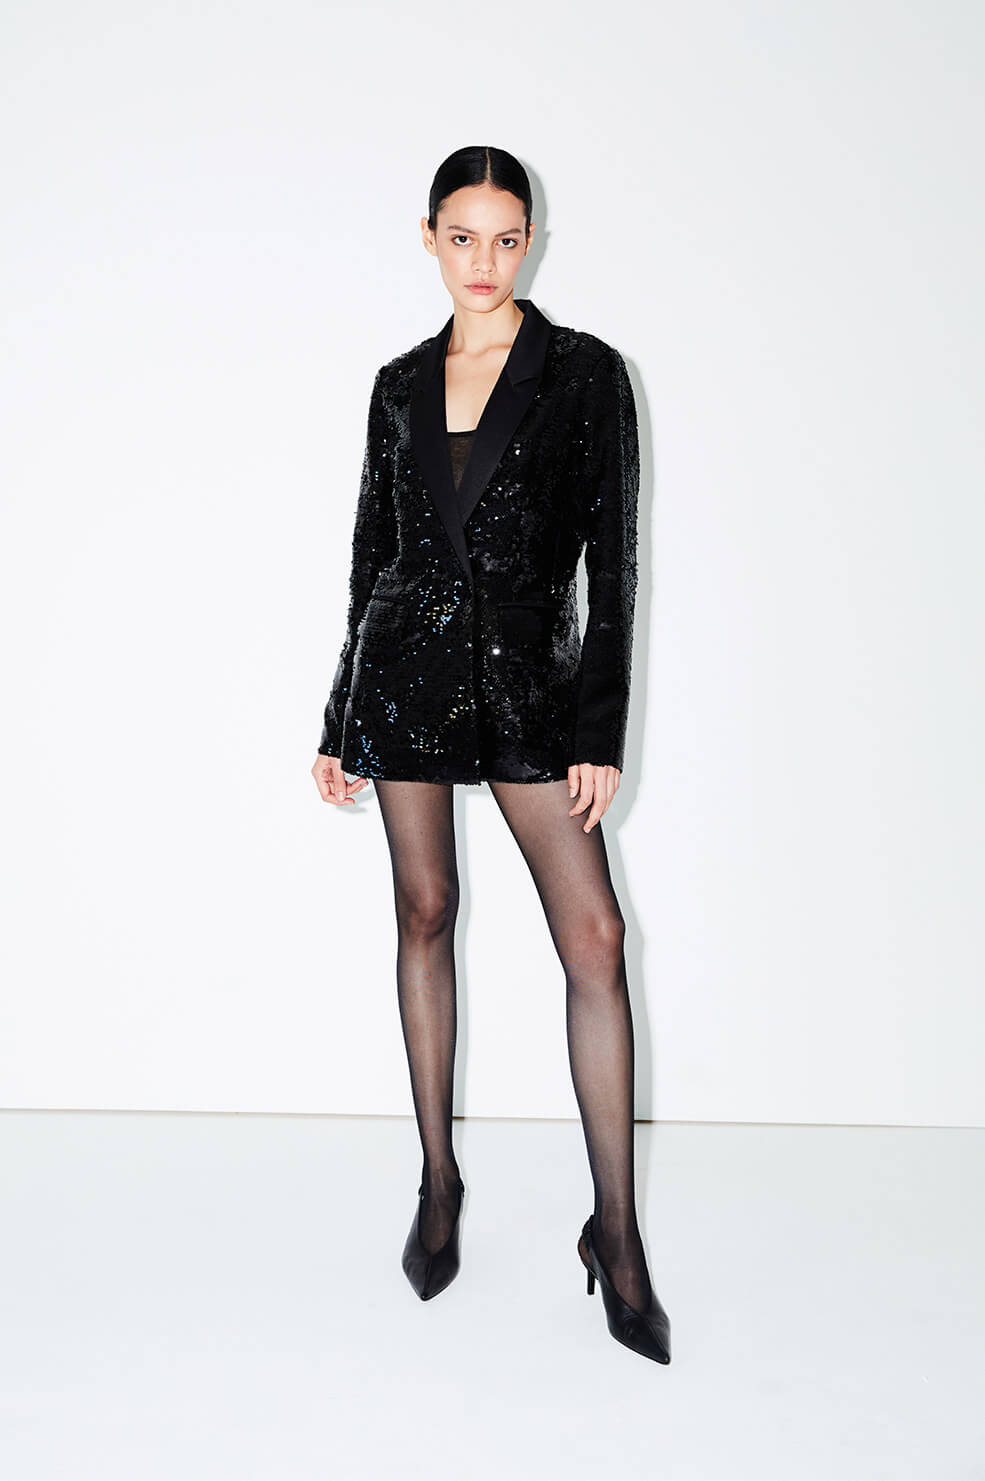 ANINE BING Ace Blazer - Black Sequin